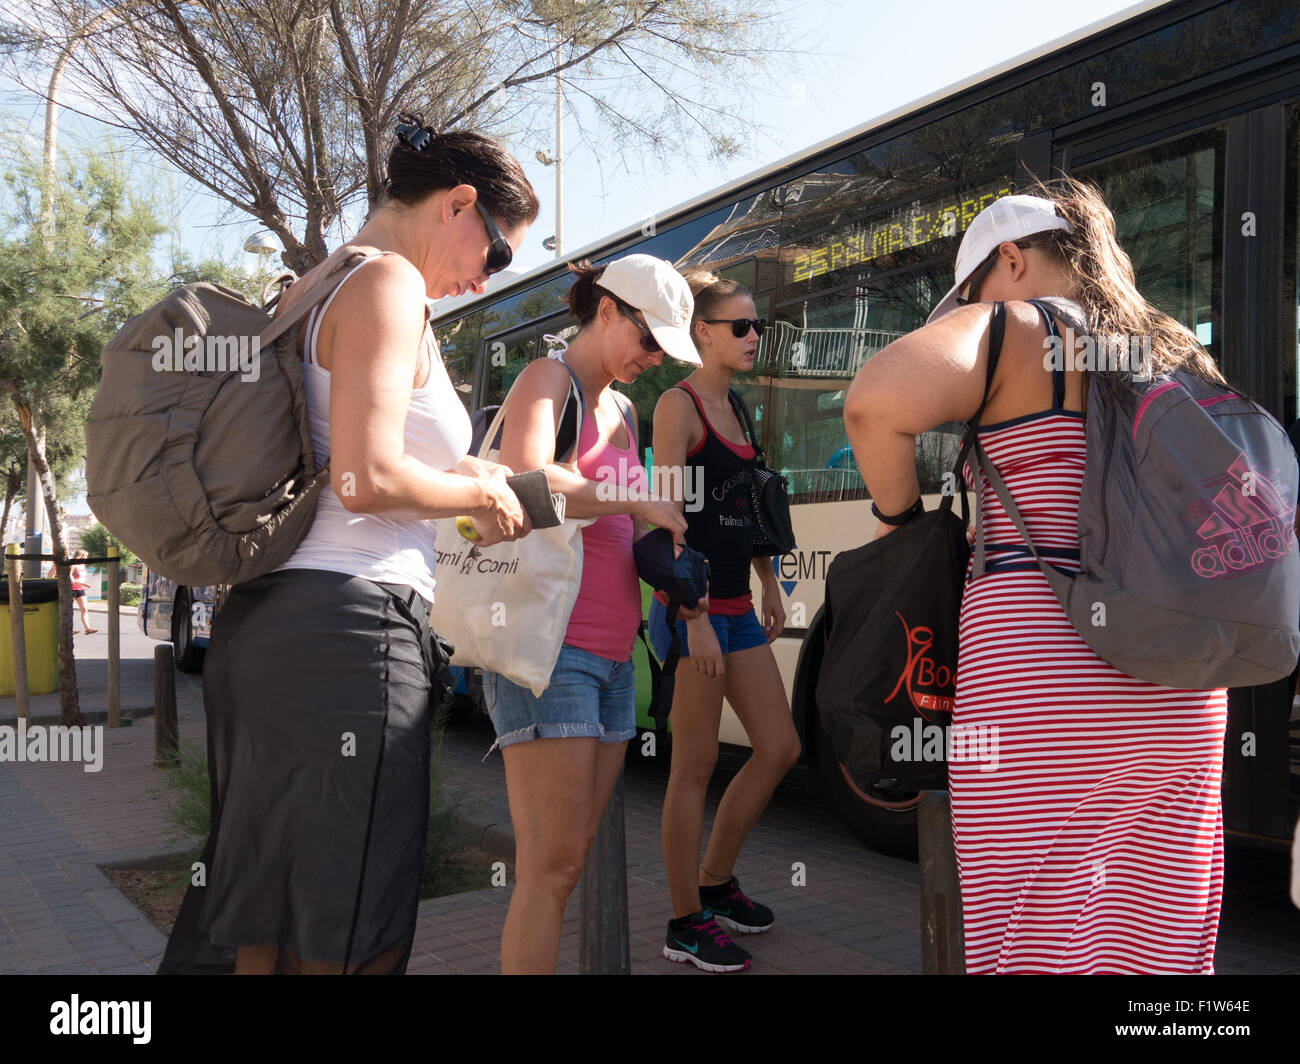 passengers waiting to board an EMT bus in El Arenal, Mallorca, Spain - Stock Image